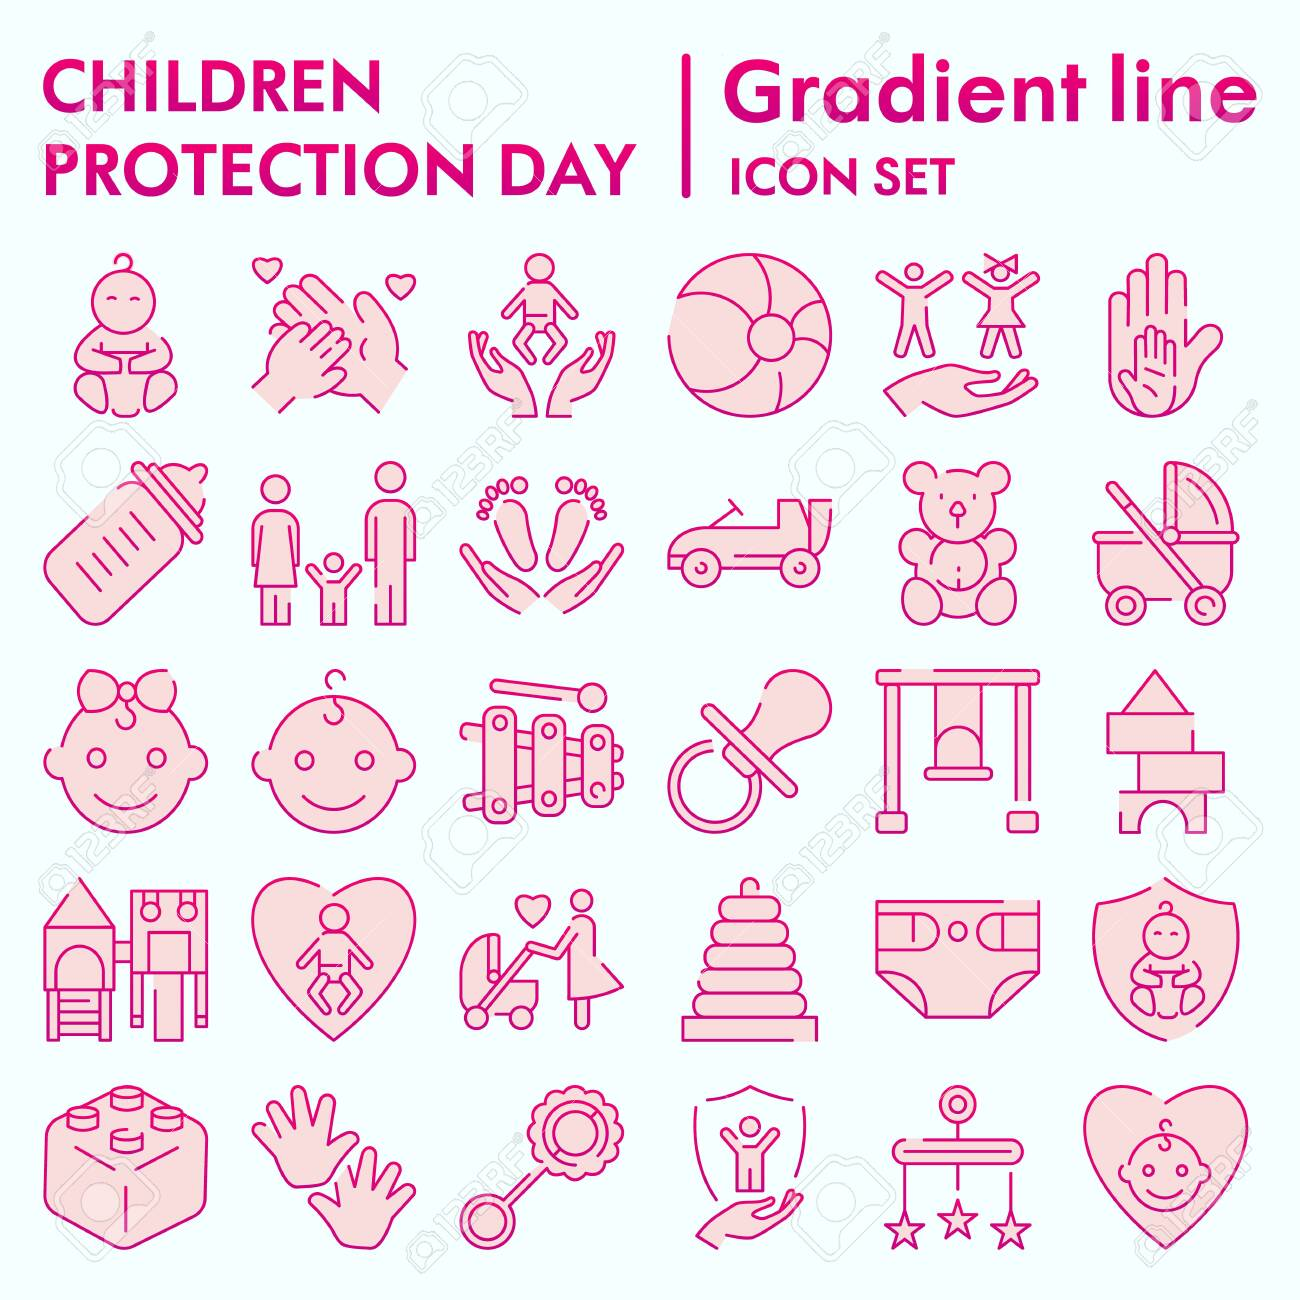 Children protection day flat icon set, baby stuff symbols collection - 140943396